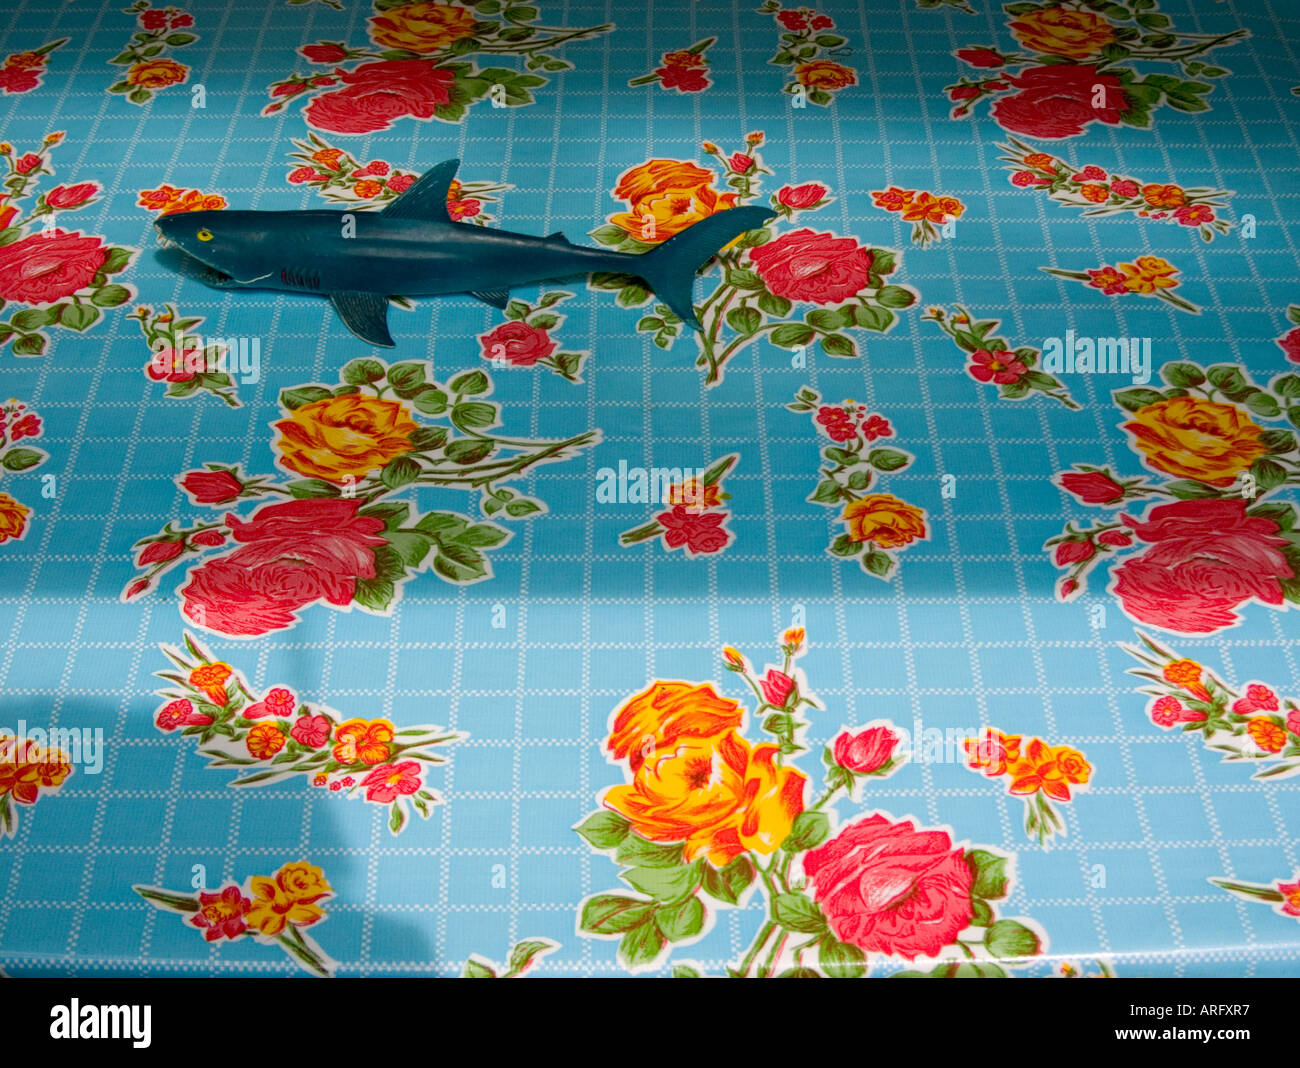 A aerial view of a toy model shark on garish  tablecloth with vibrant rose pattern - Stock Image